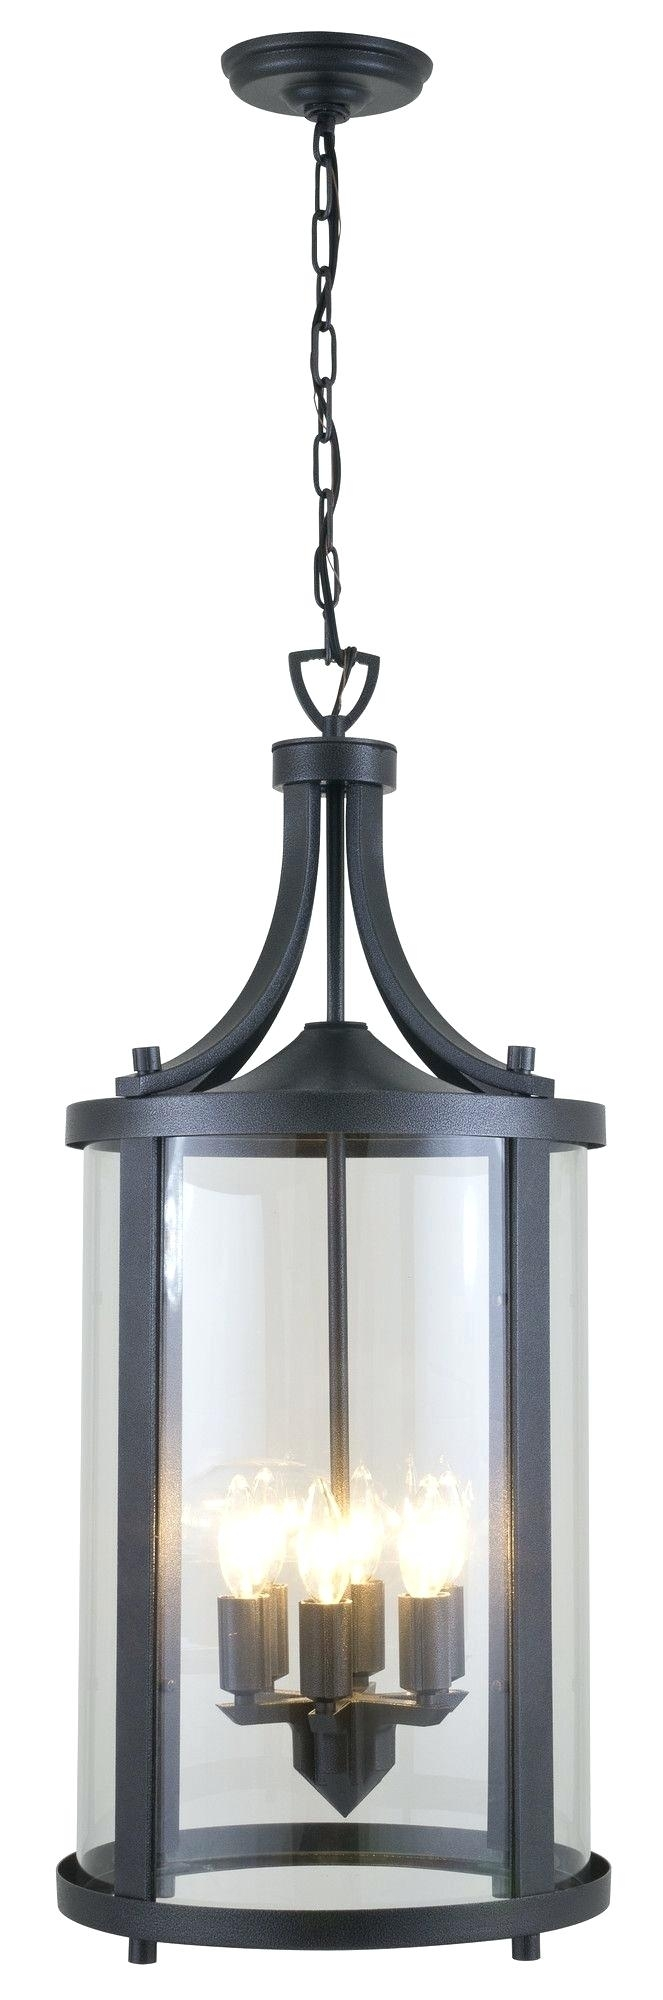 Outdoor Hanging Lanterns Solar Lamp Australia Sonoma Outdoors With Outdoor Hanging Lanterns From Australia (#14 of 15)